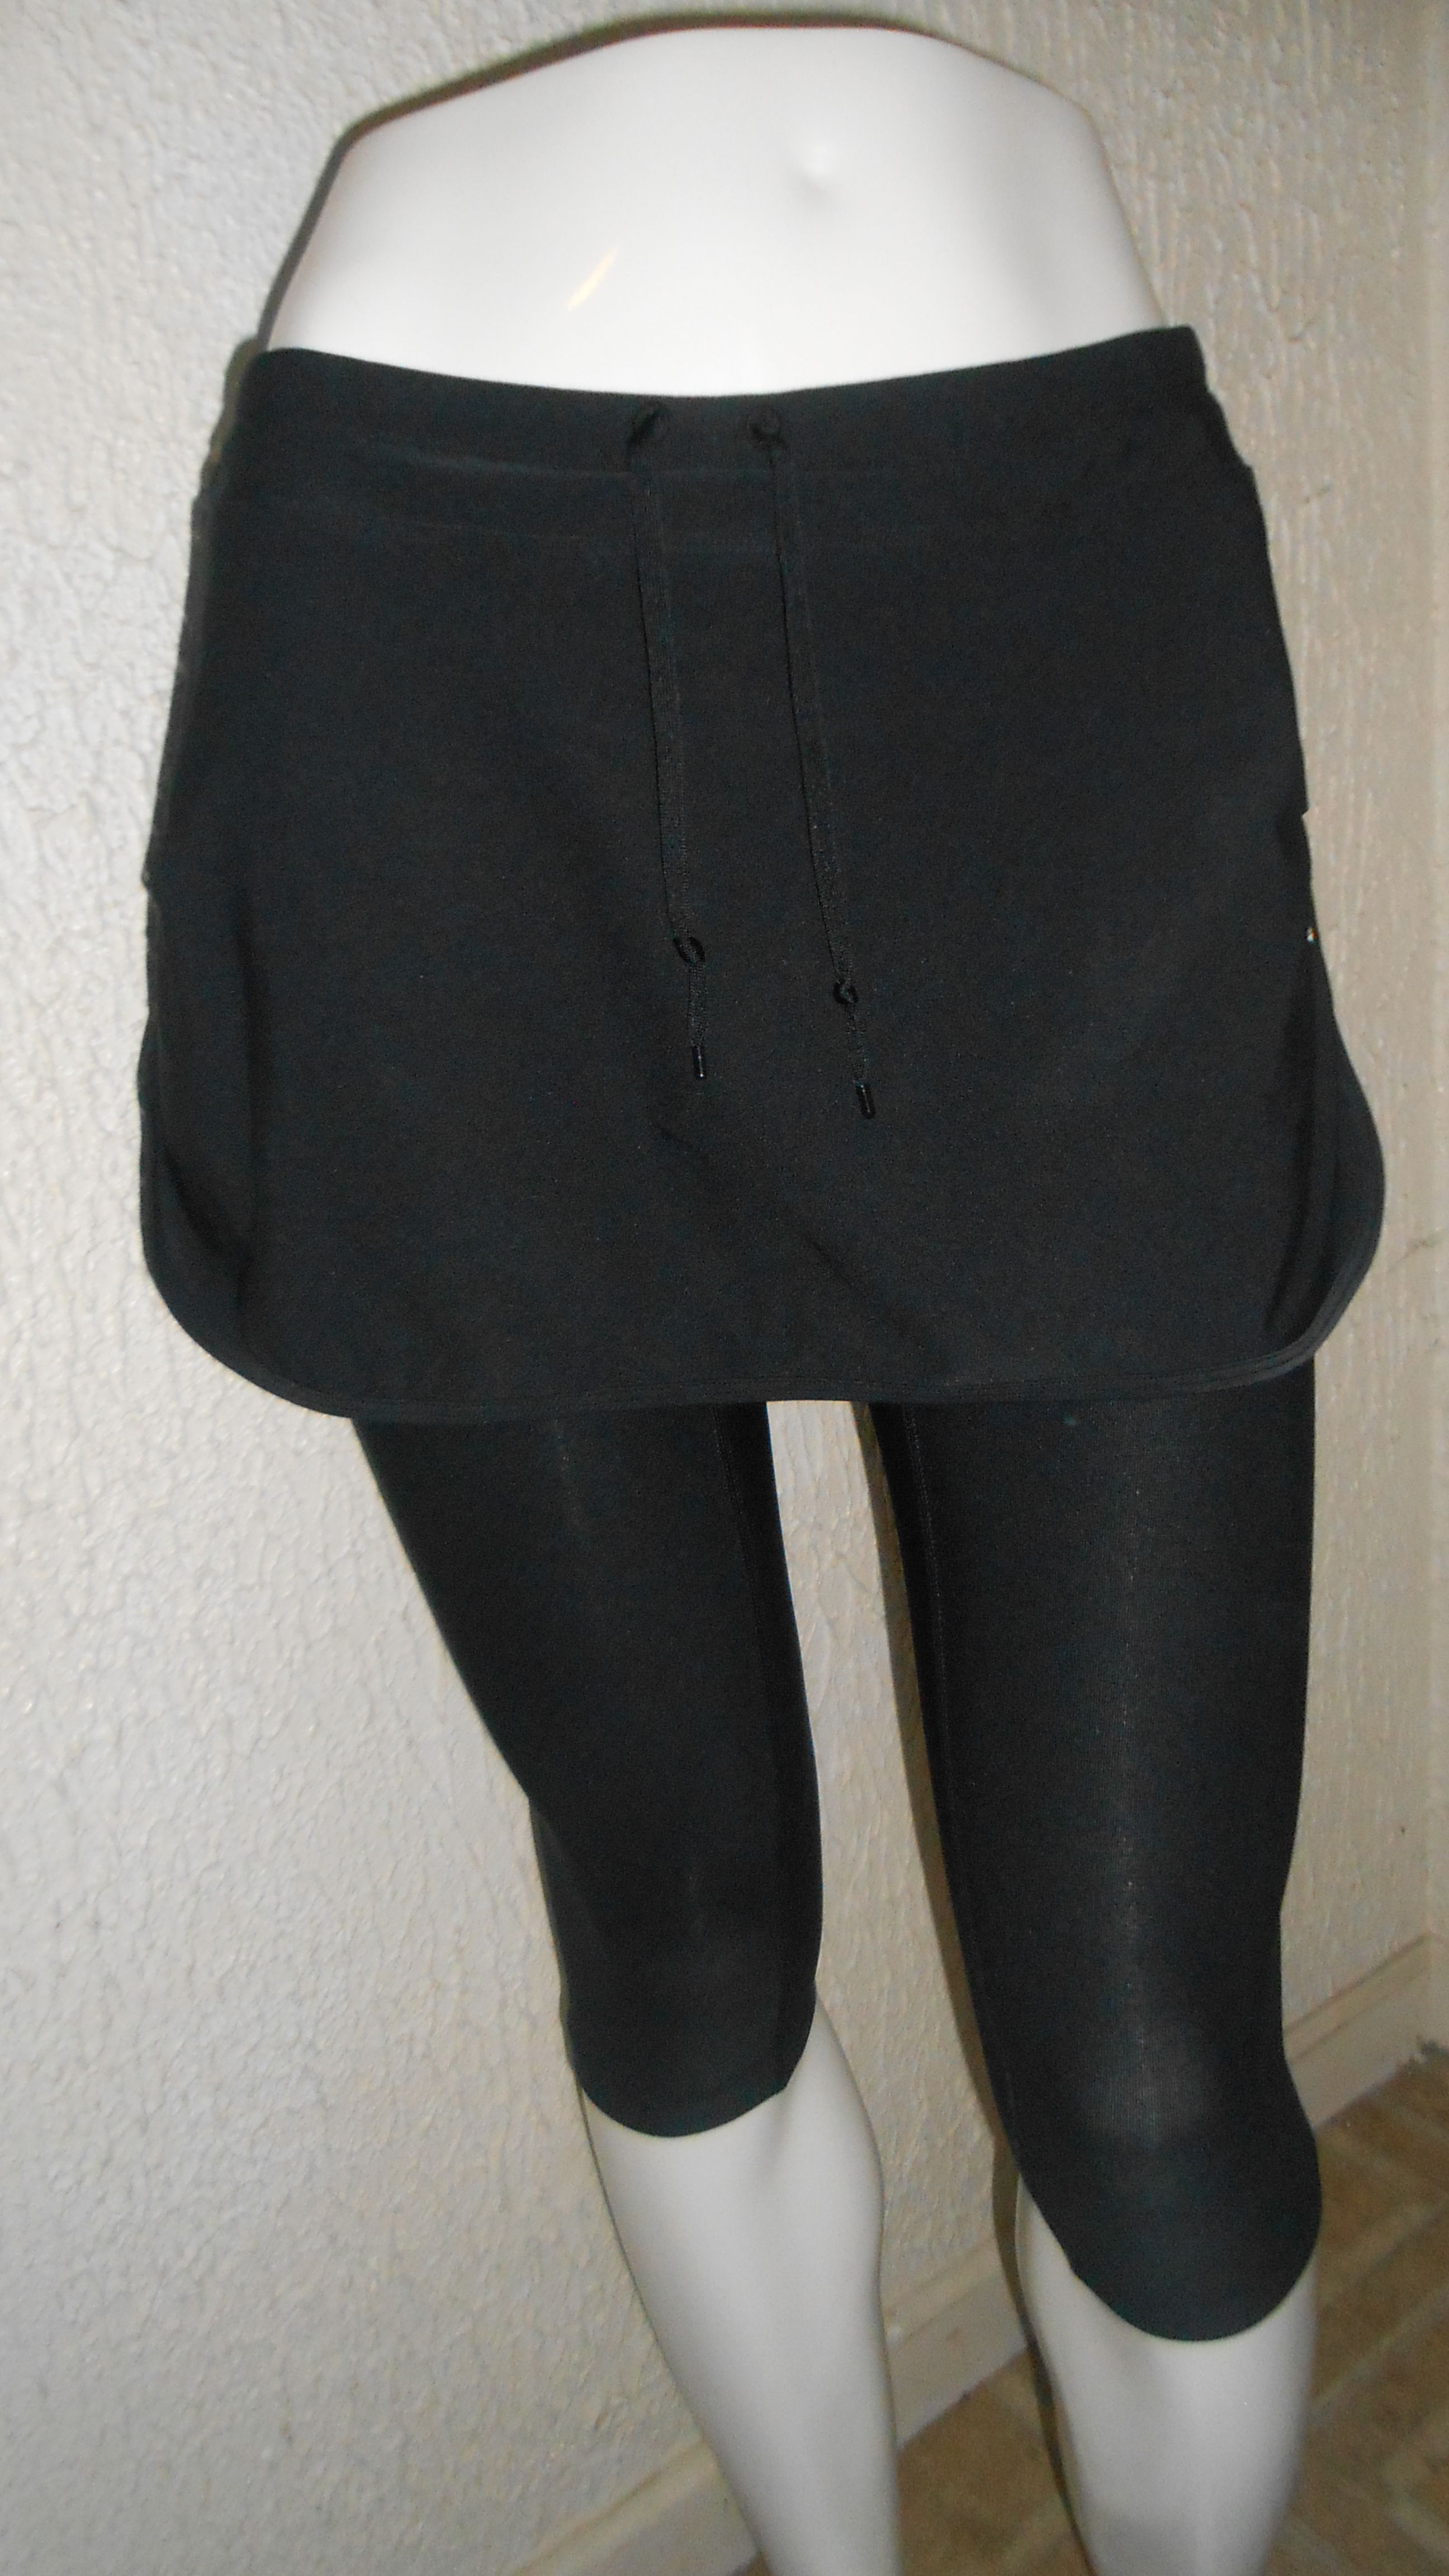 Nike Dri Fit capri legging with attached skirt, available at: http://stores.ebay.com/lovelyapparel